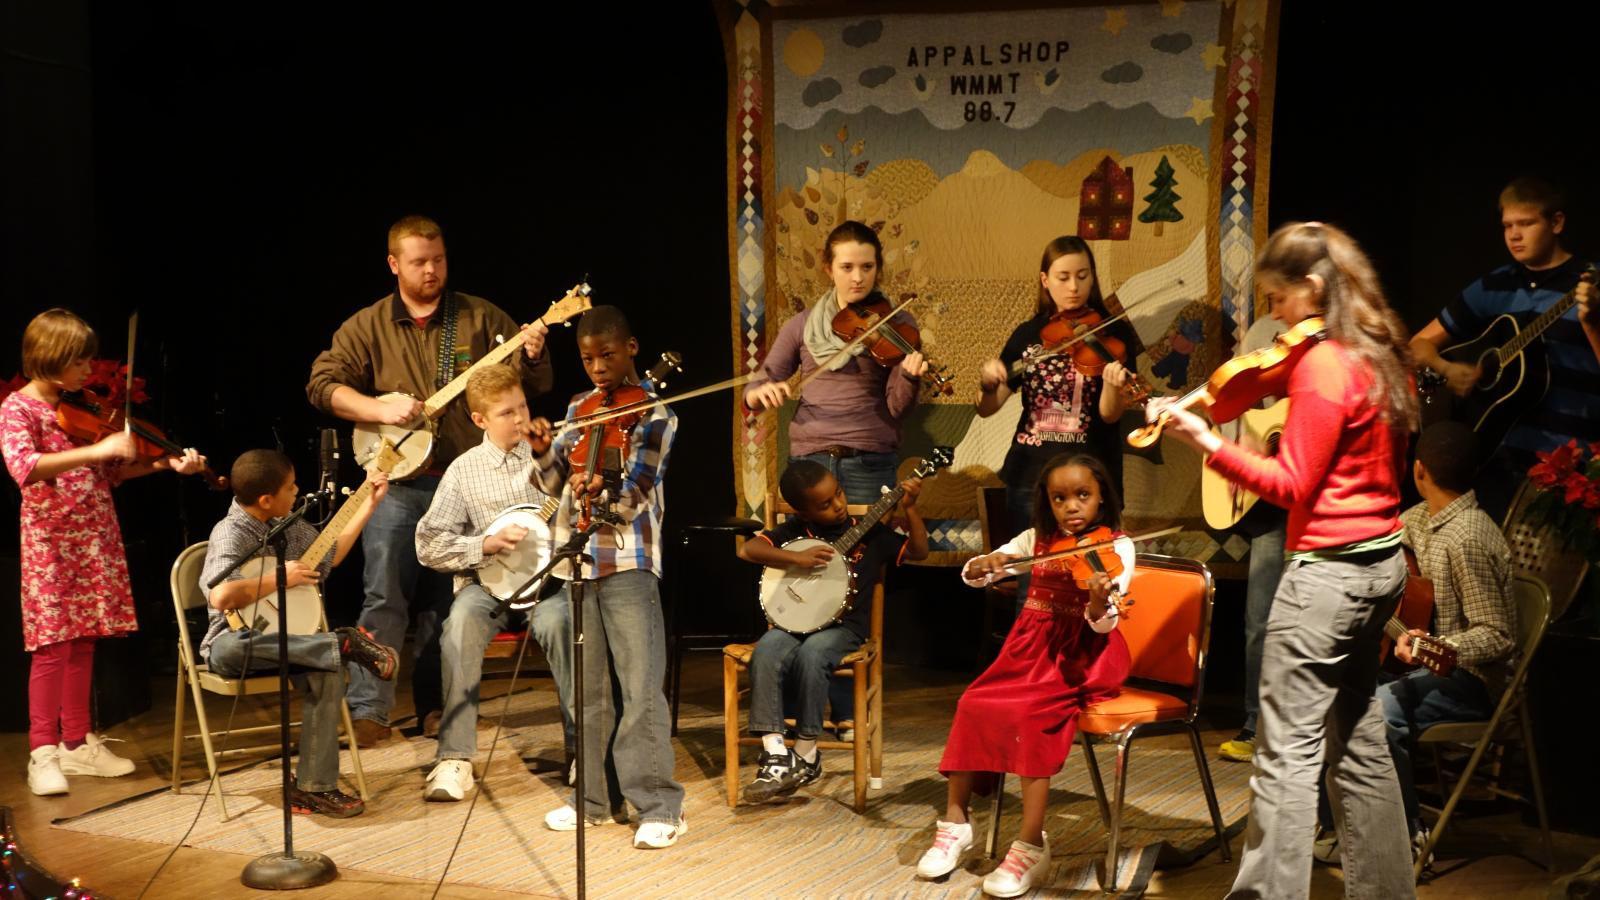 Small stage with young people playing musical instruments